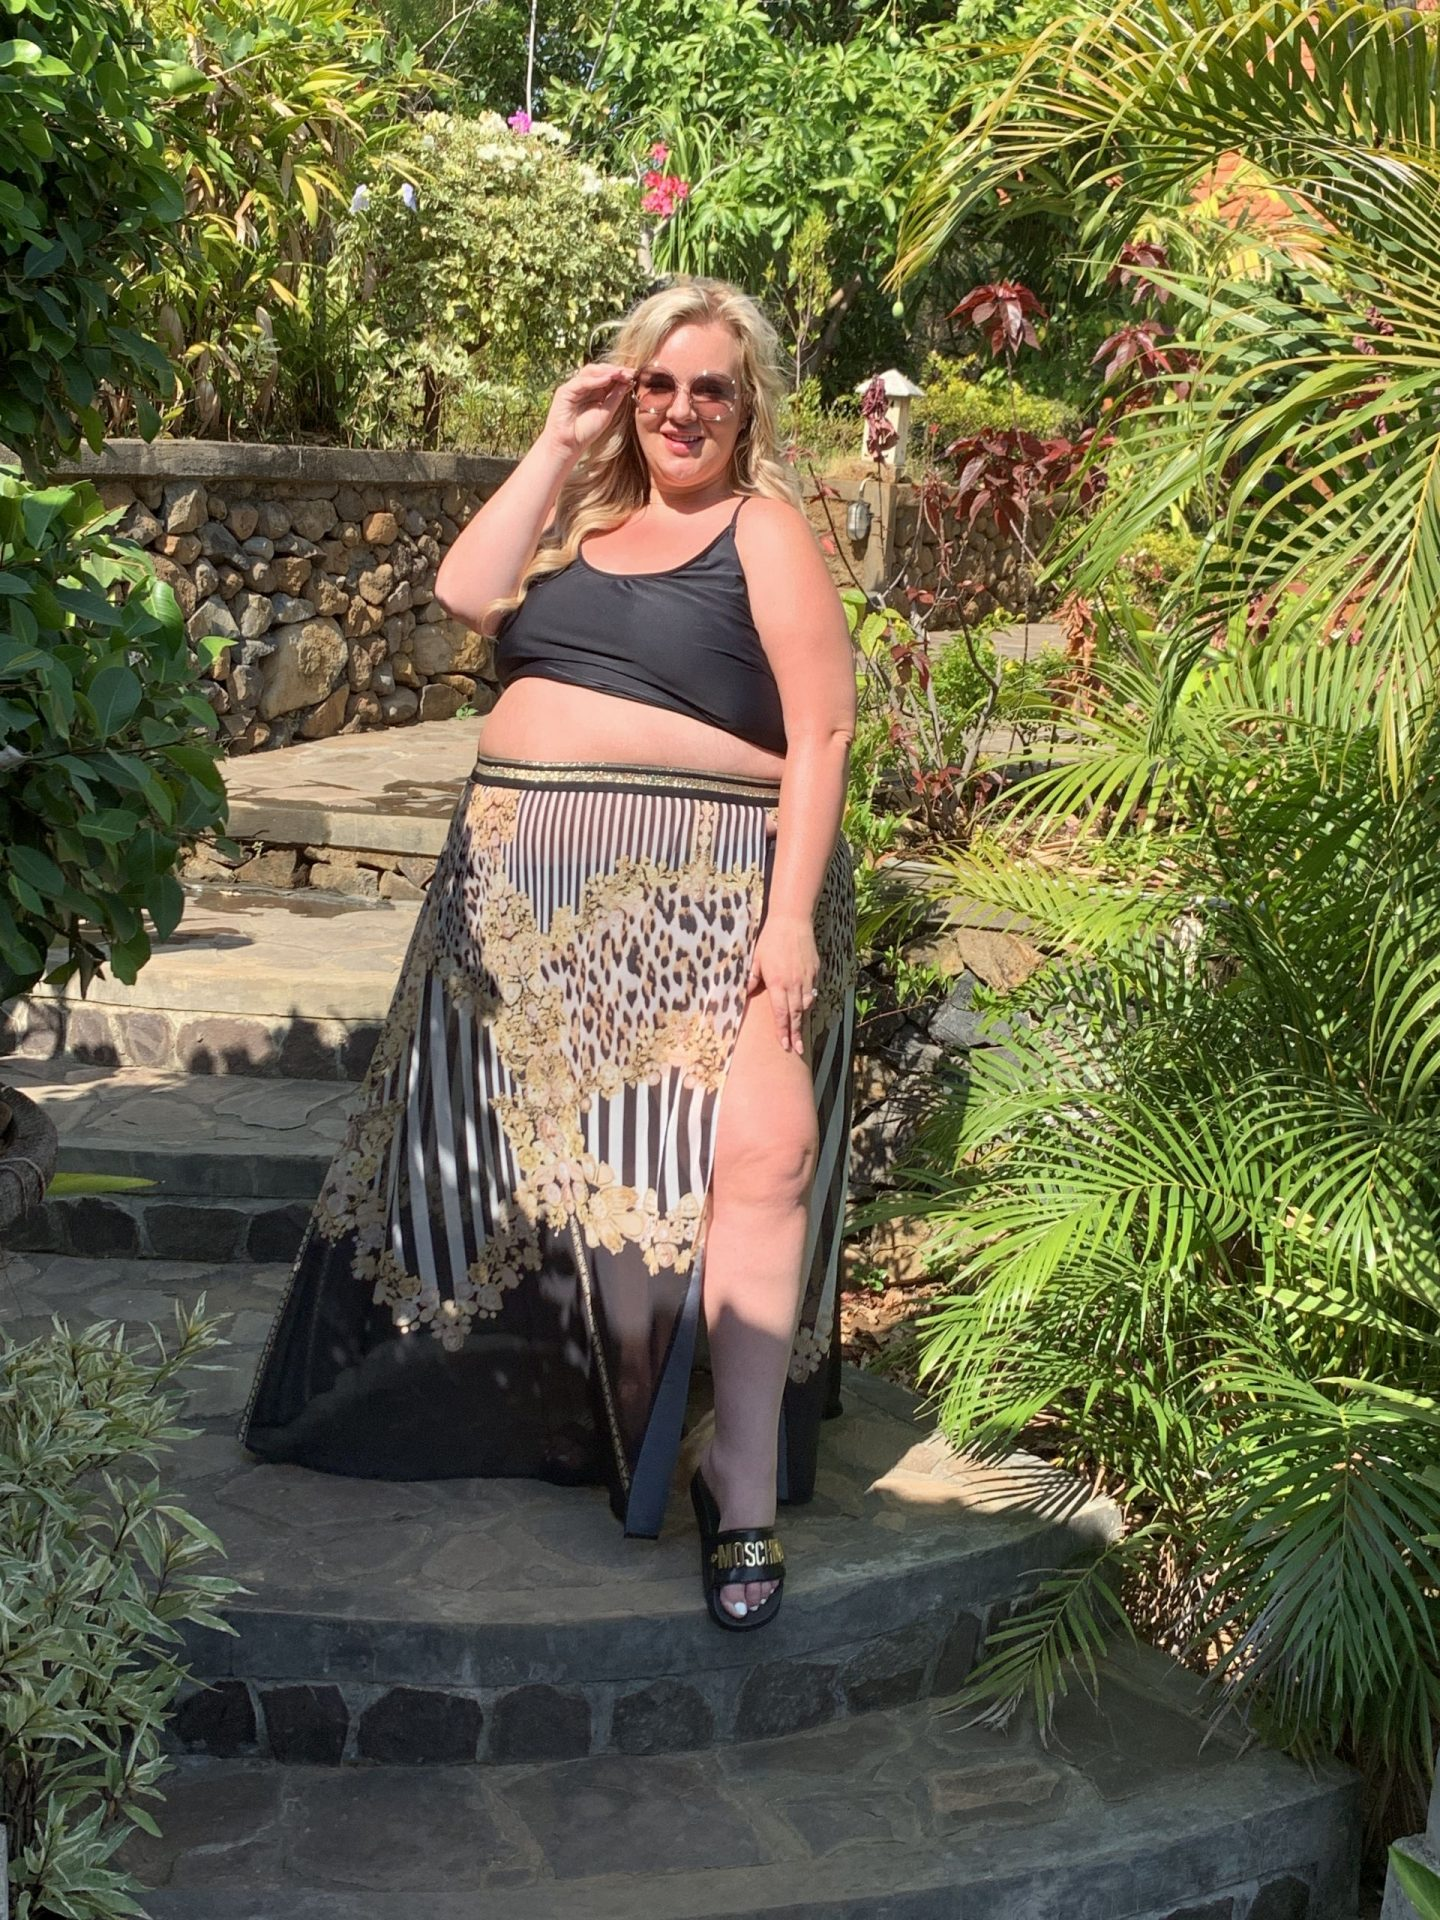 Plus Size Poolside Glamour